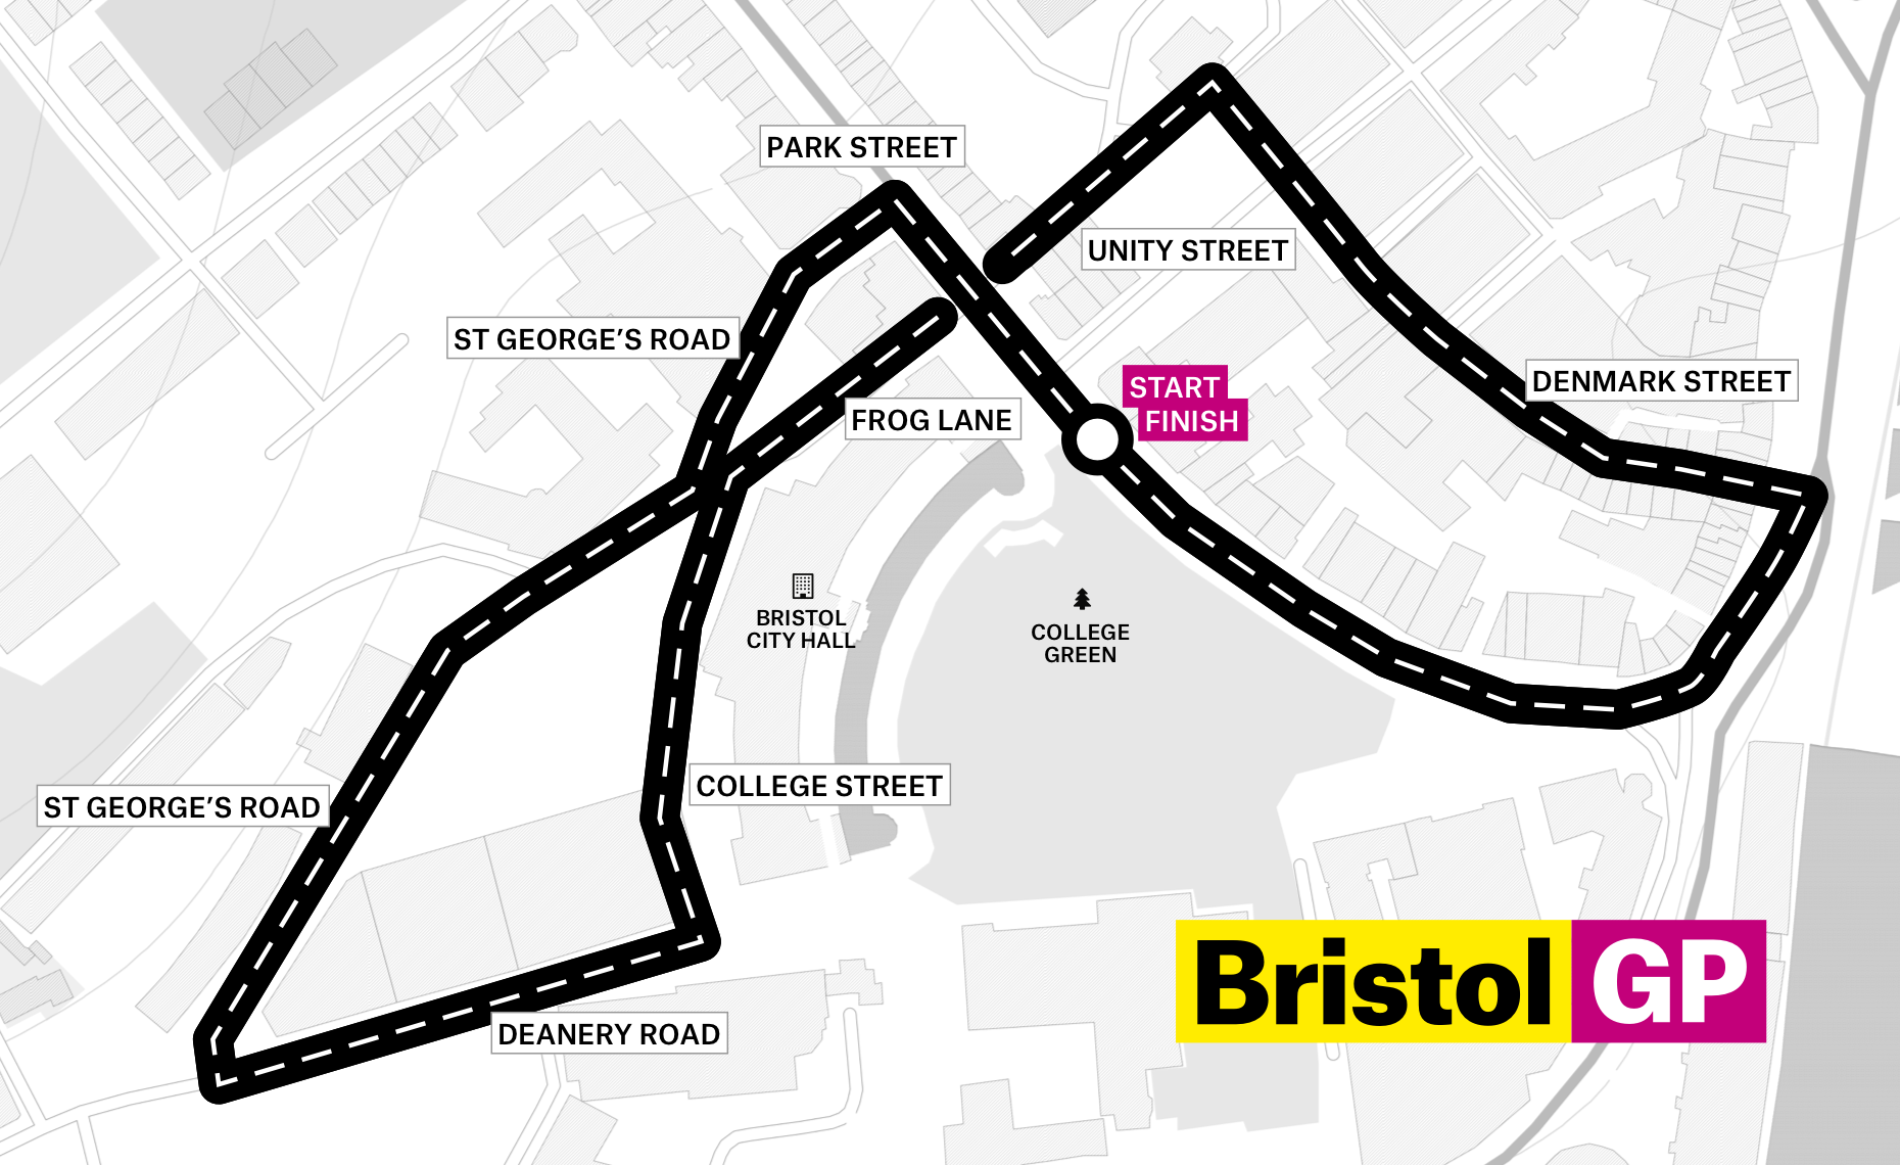 Please Note: The College Street Car Park Will Be Closed Due To The Event  And Not Accessible For Parking